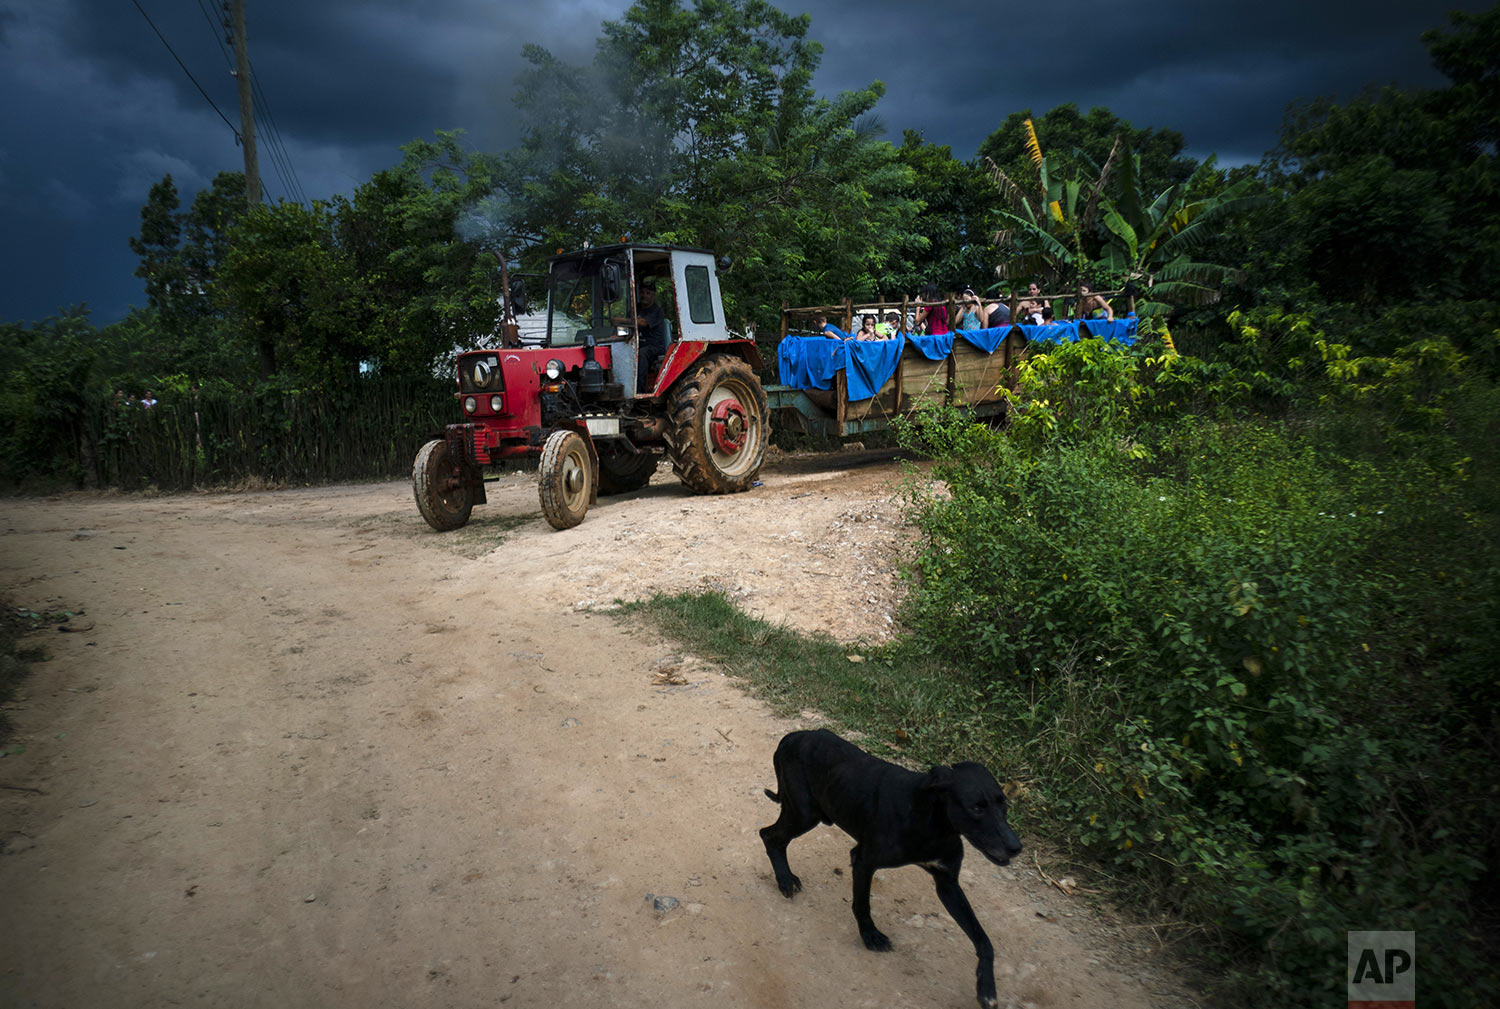 In this Aug. 24, 2019 photo, a dog named Danger walks in front of a tractor pulling a trailer converted into a pool, where children swim as it move along the roads of El Infernal neighborhood in San Andres in the province of Pinar del Río, Cuba. (AP Photo/Ramon Espinosa)